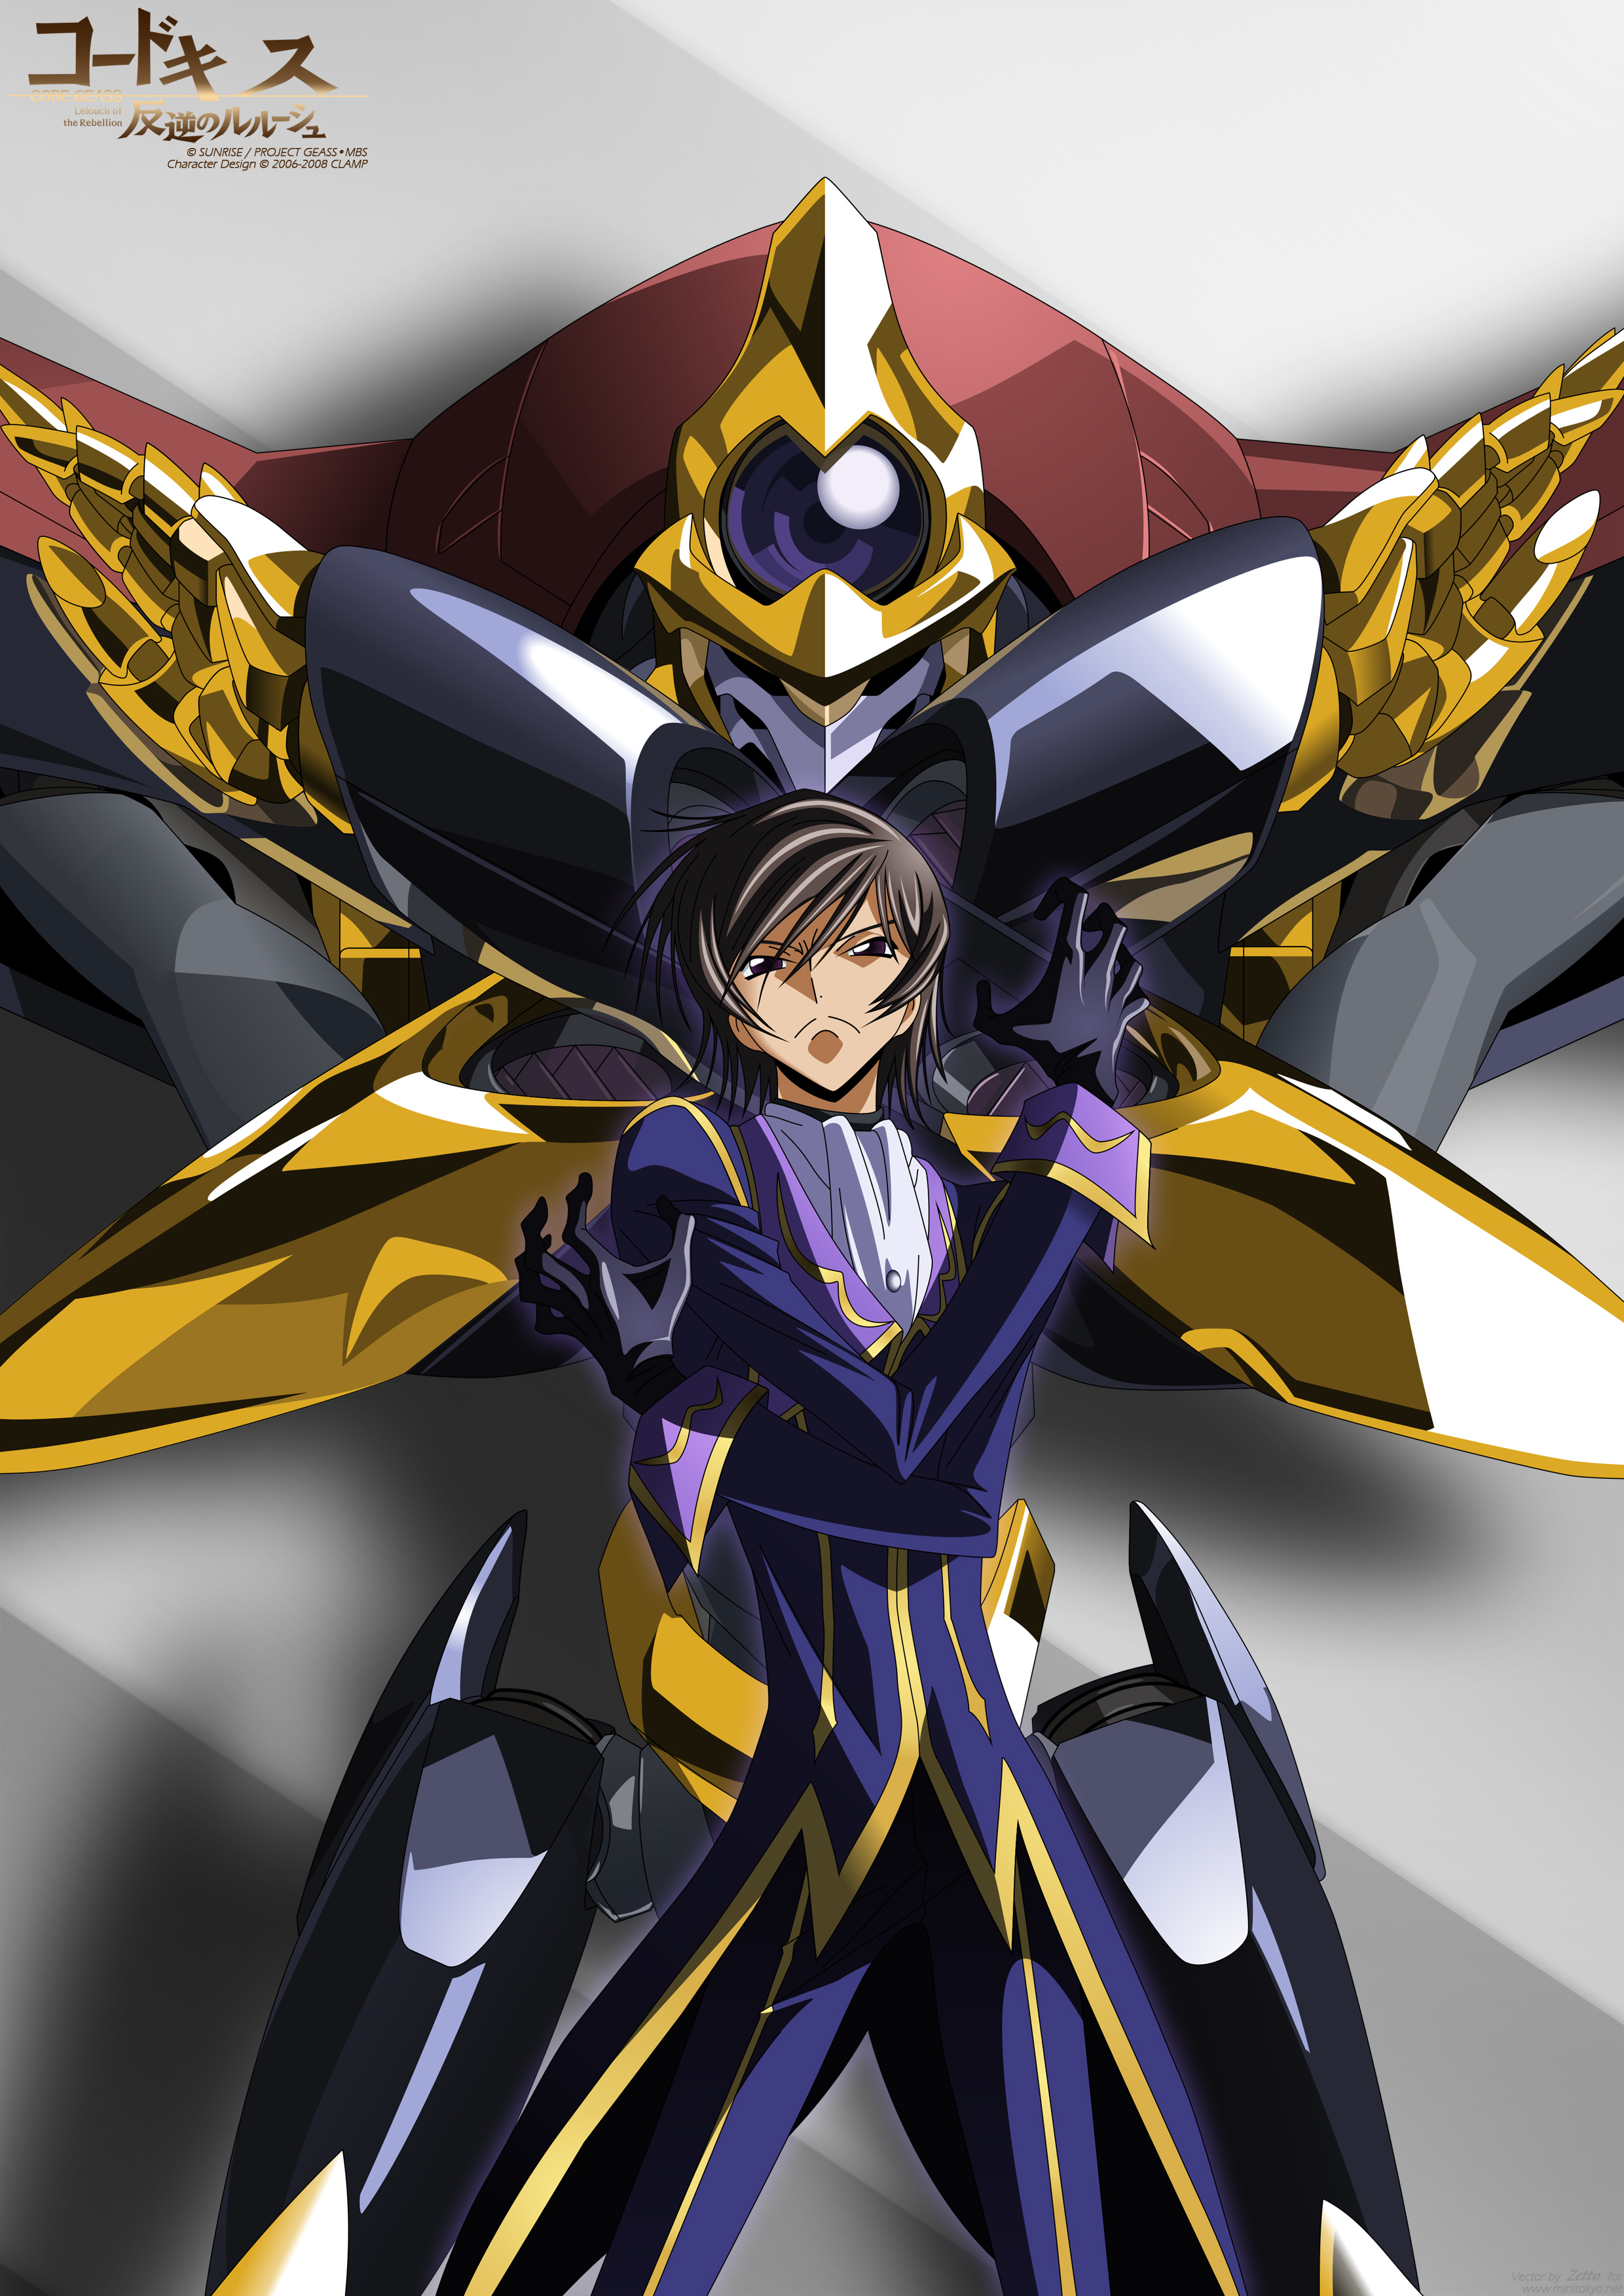 Zero Code Geass Lelouch Lamperouge Mobile Wallpaper